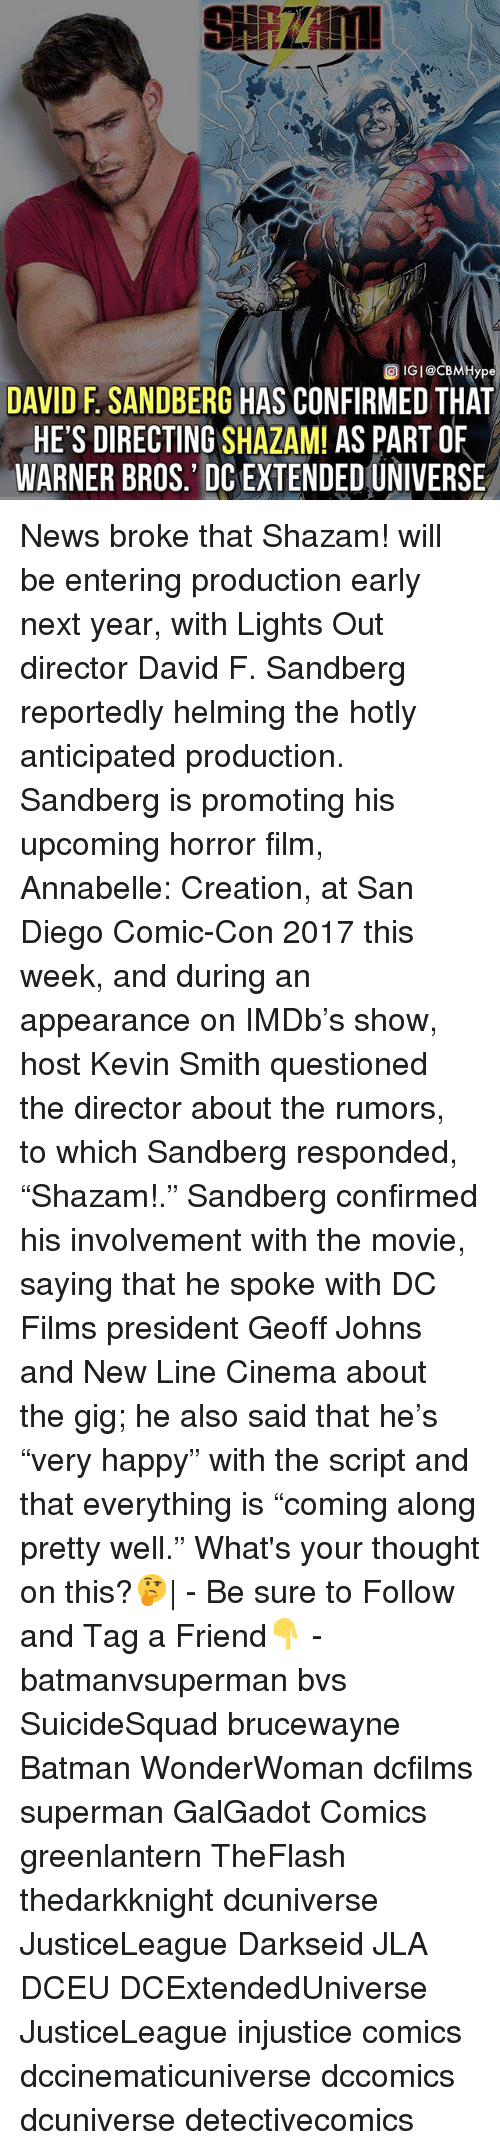 """annabelle: ype  DAVID F. SANDBERG HAS CONFIRMED THAT  HE'S DIRECTING SHAZAM! AS PART OF  WARNER BROS.' DC EXTENDED UNIVERSE News broke that Shazam! will be entering production early next year, with Lights Out director David F. Sandberg reportedly helming the hotly anticipated production. Sandberg is promoting his upcoming horror film, Annabelle: Creation, at San Diego Comic-Con 2017 this week, and during an appearance on IMDb's show, host Kevin Smith questioned the director about the rumors, to which Sandberg responded, """"Shazam!."""" Sandberg confirmed his involvement with the movie, saying that he spoke with DC Films president Geoff Johns and New Line Cinema about the gig; he also said that he's """"very happy"""" with the script and that everything is """"coming along pretty well."""" What's your thought on this?🤔